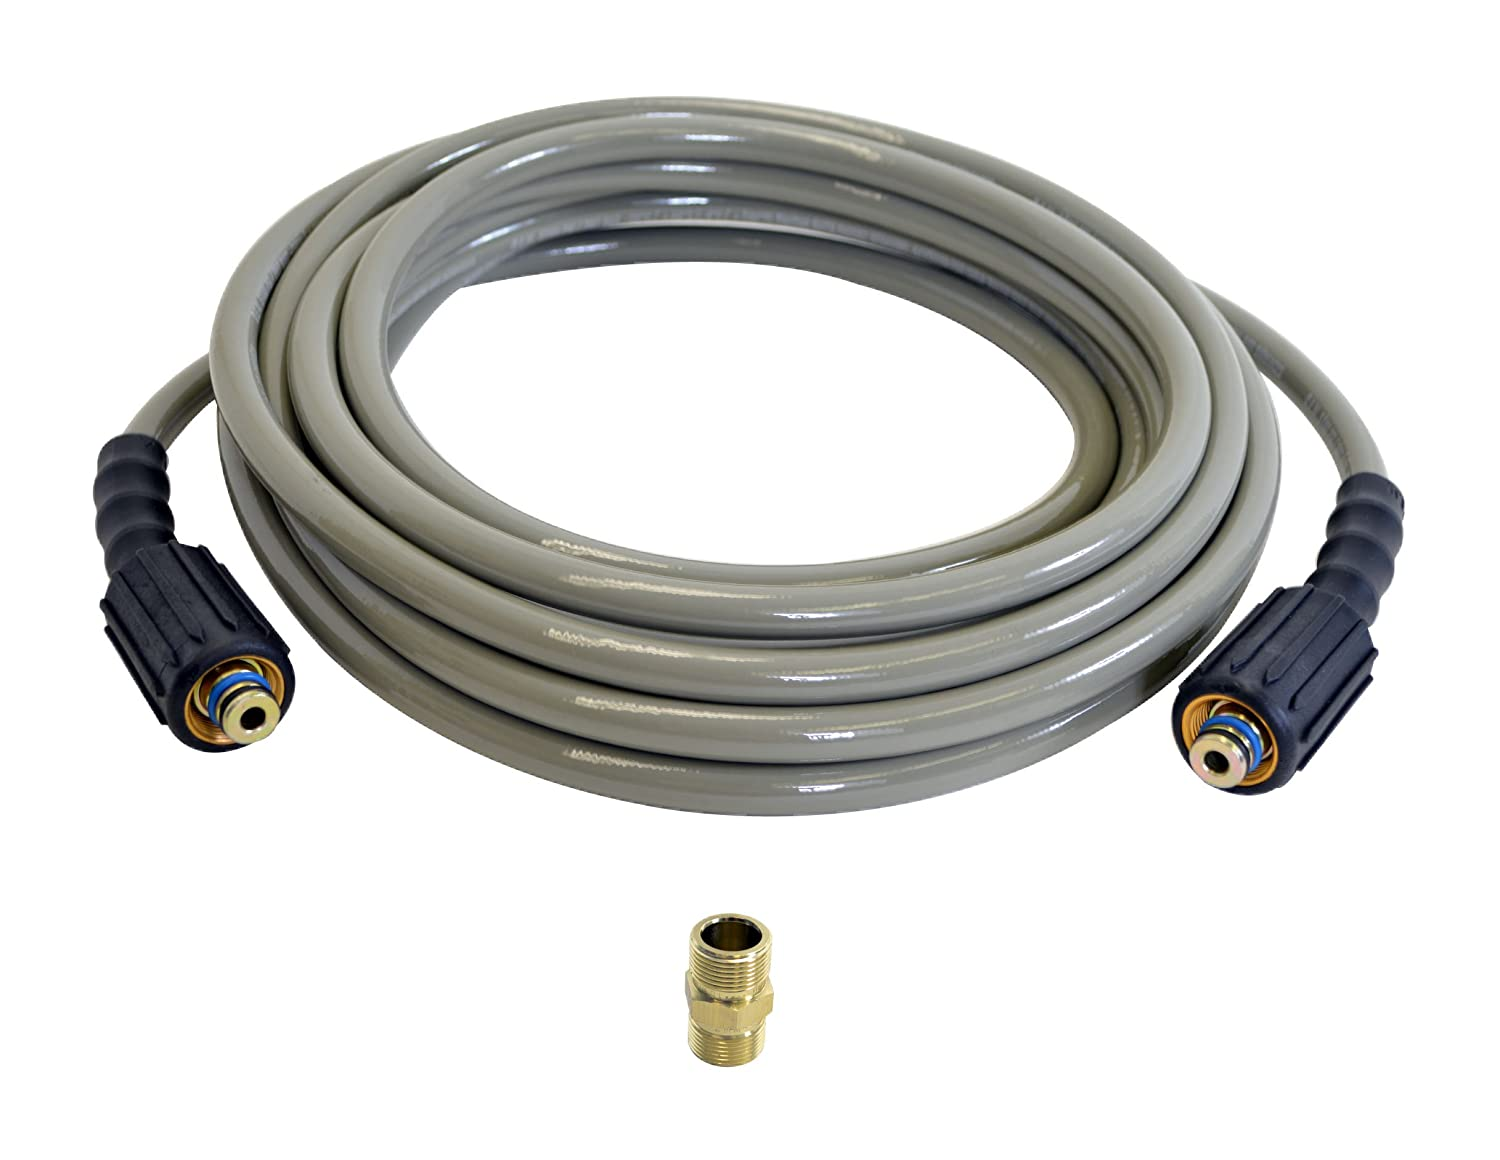 Simpson 40224 3100 PSI Cold Water Replacement/Extension Hose